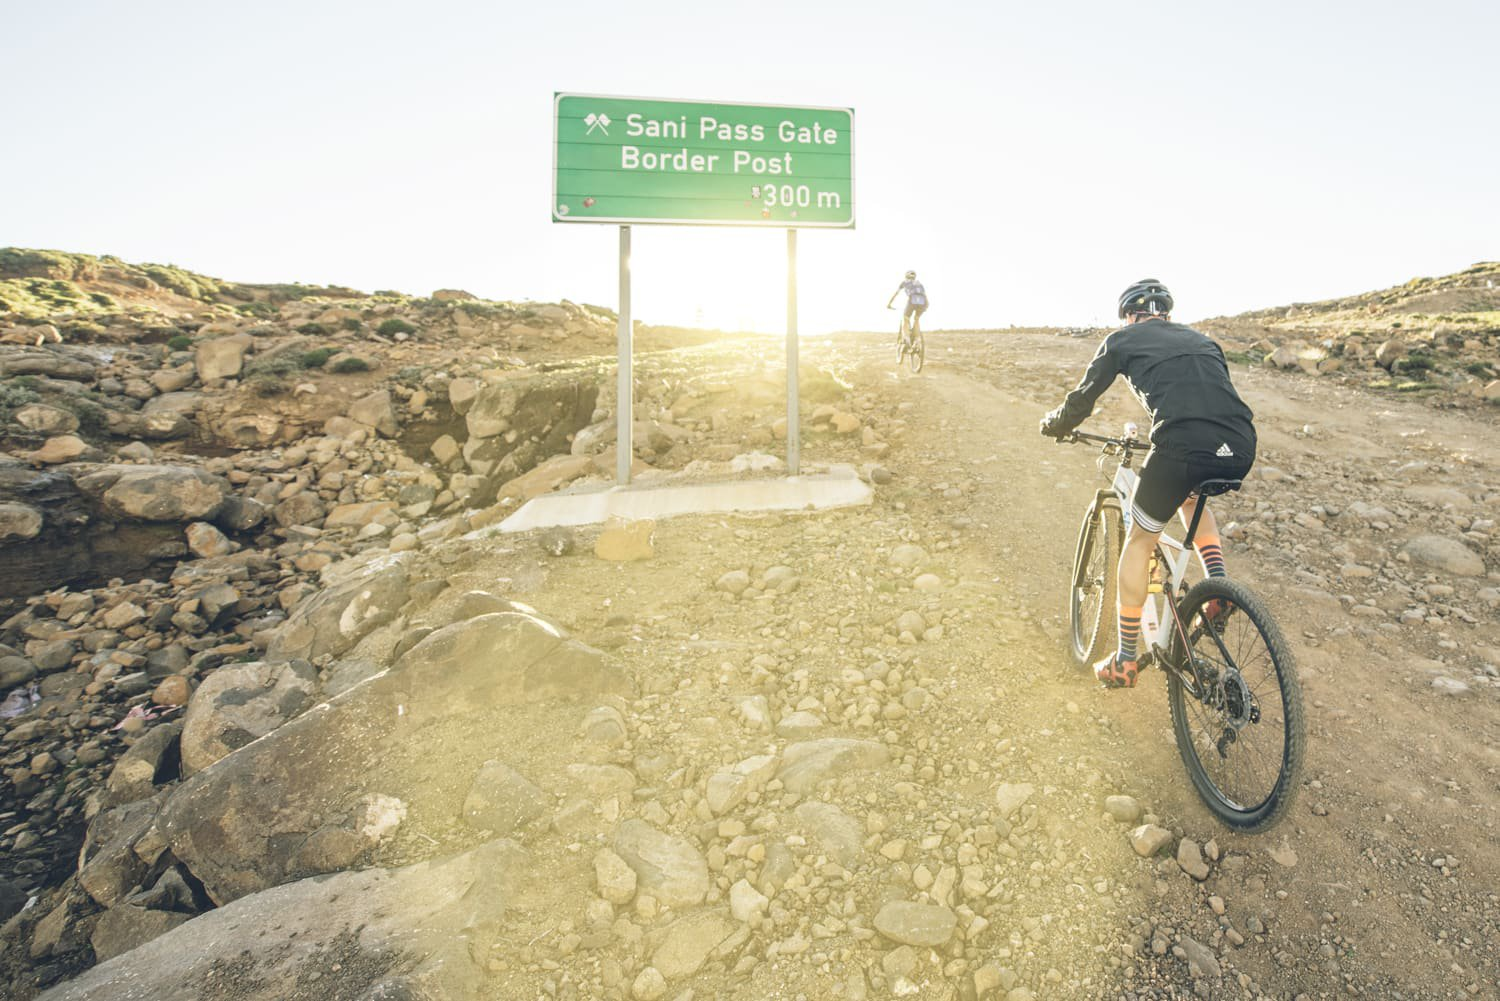 sani-pass-desmond-louw-bicycling-magazine-wowrides-0084